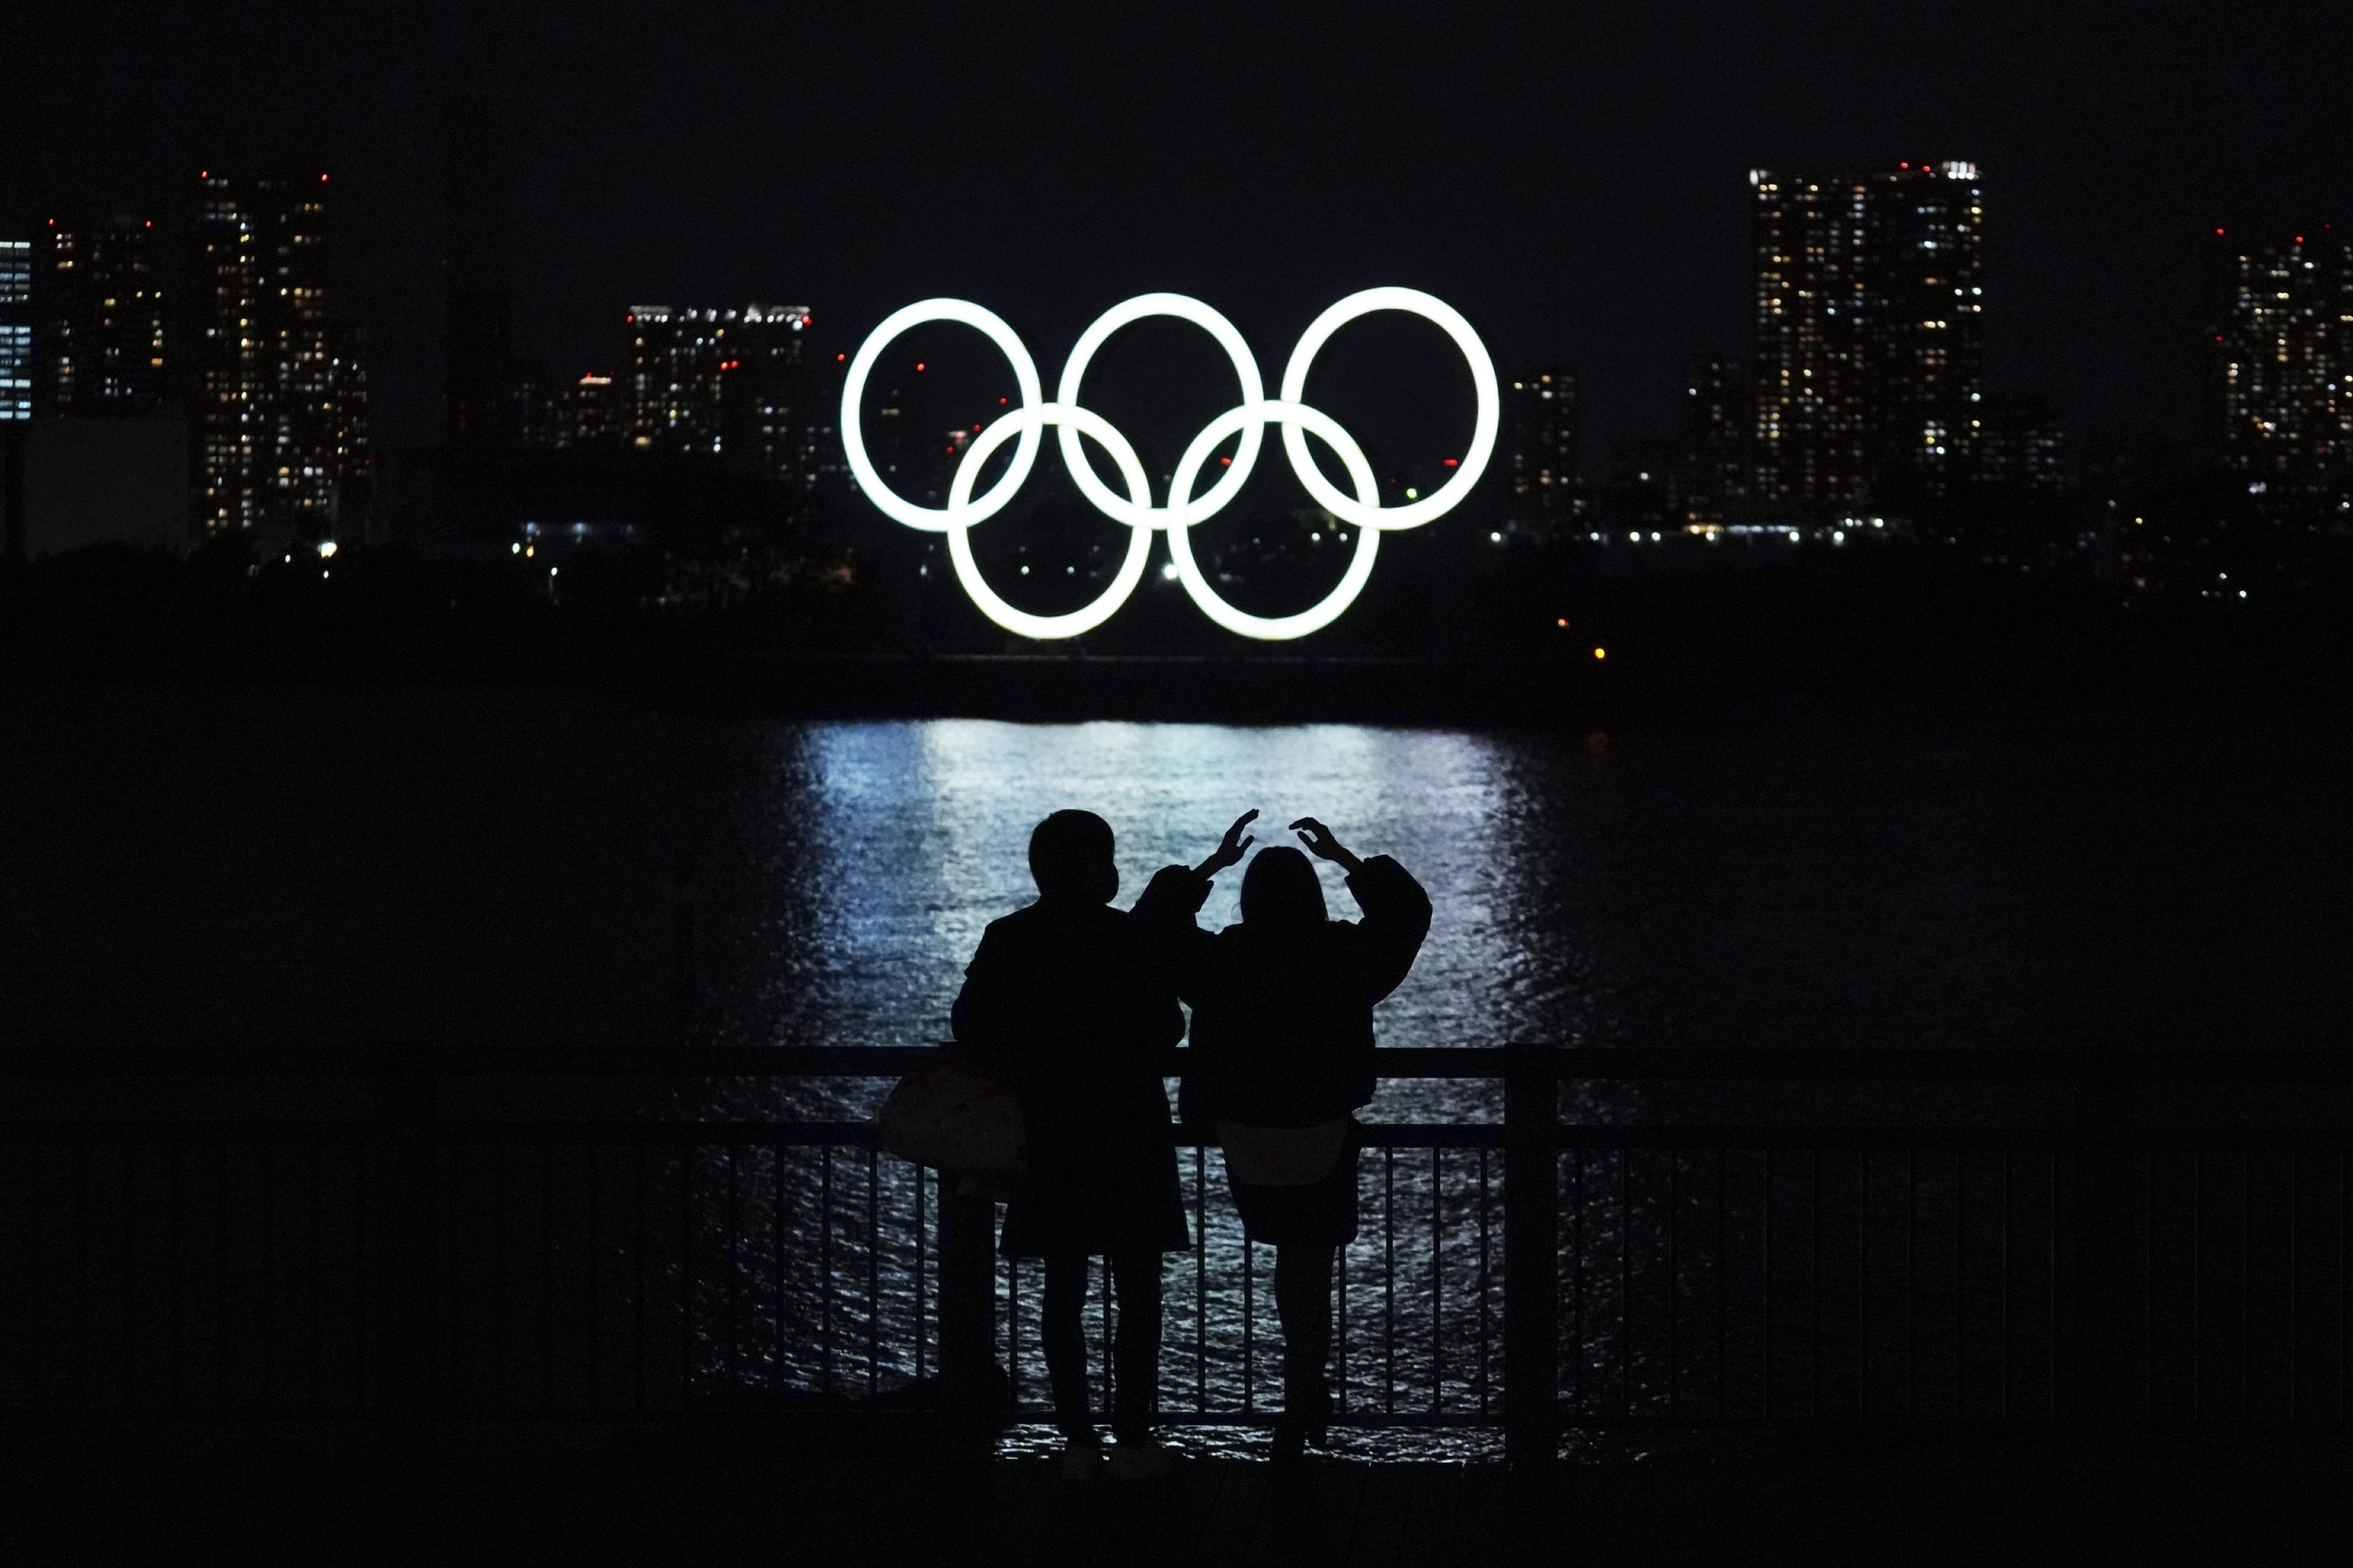 Olympic fans from abroad may have health tracked by app